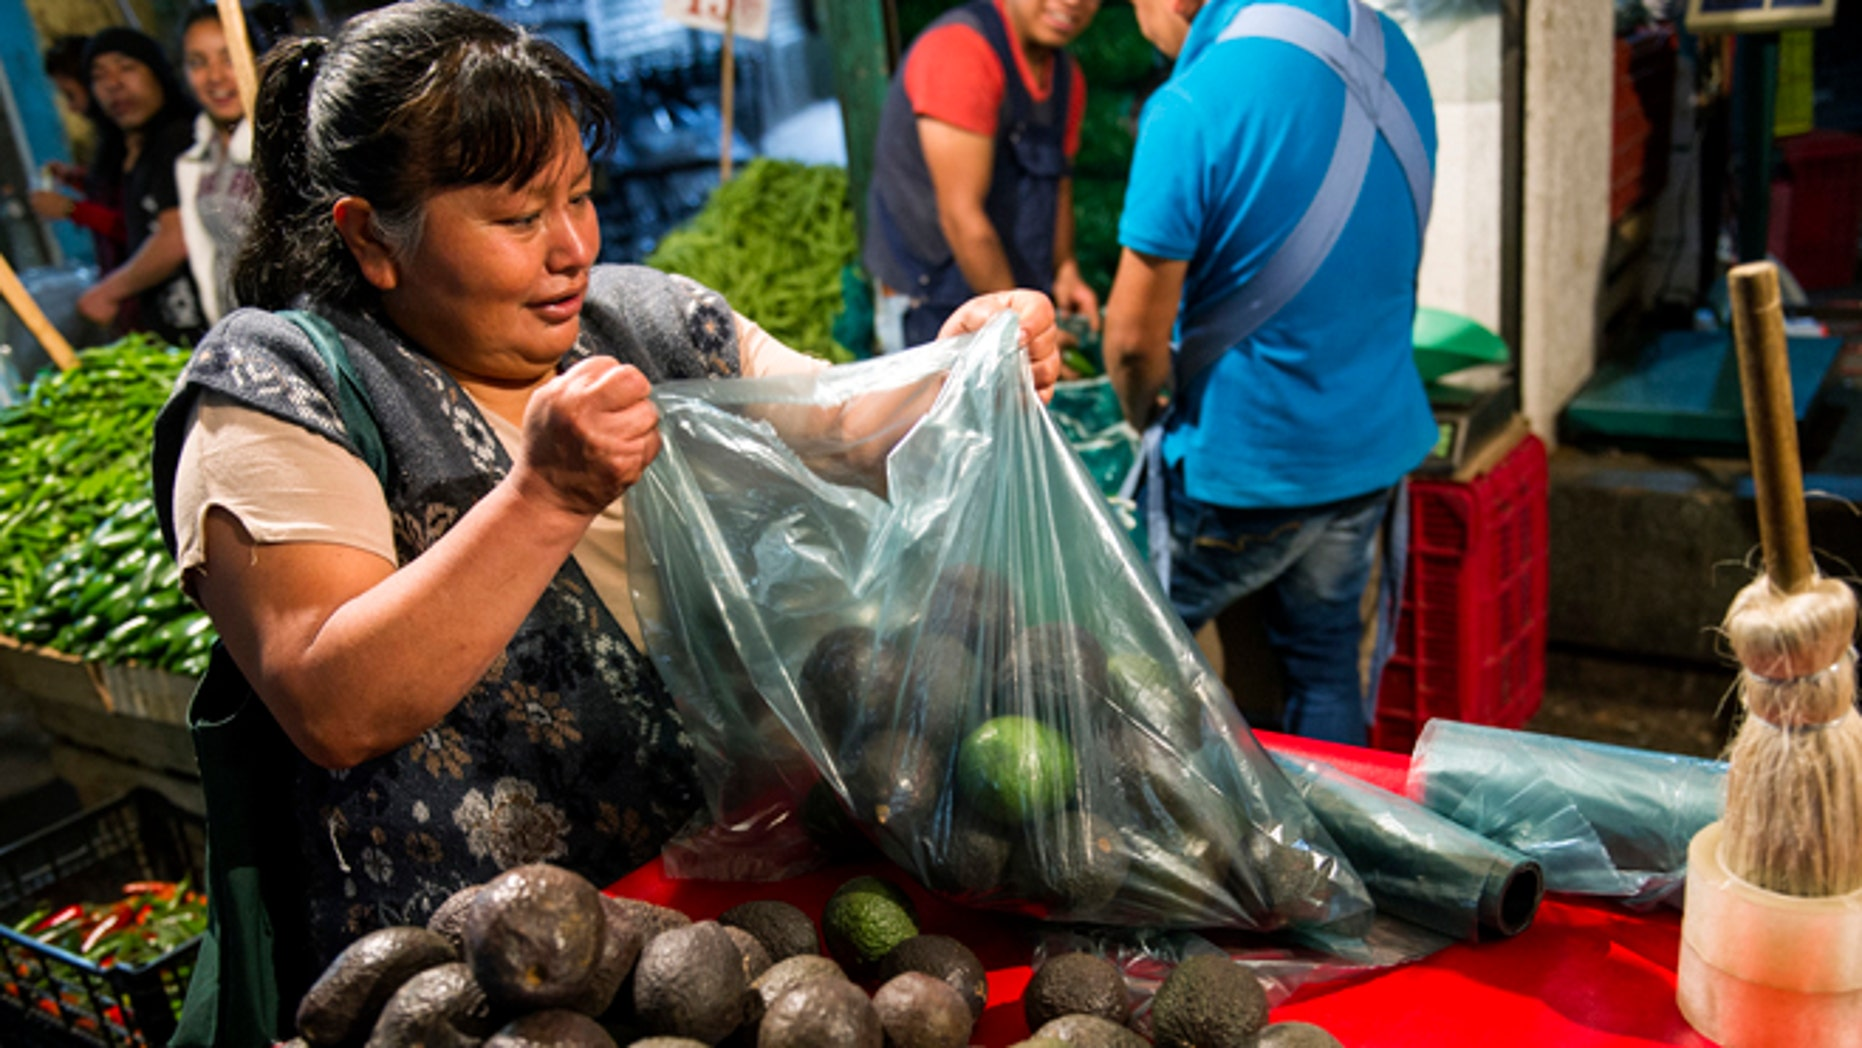 A woman prepares a bag of avocados in Mexico City, Tuesday, Aug. 9, 2016.